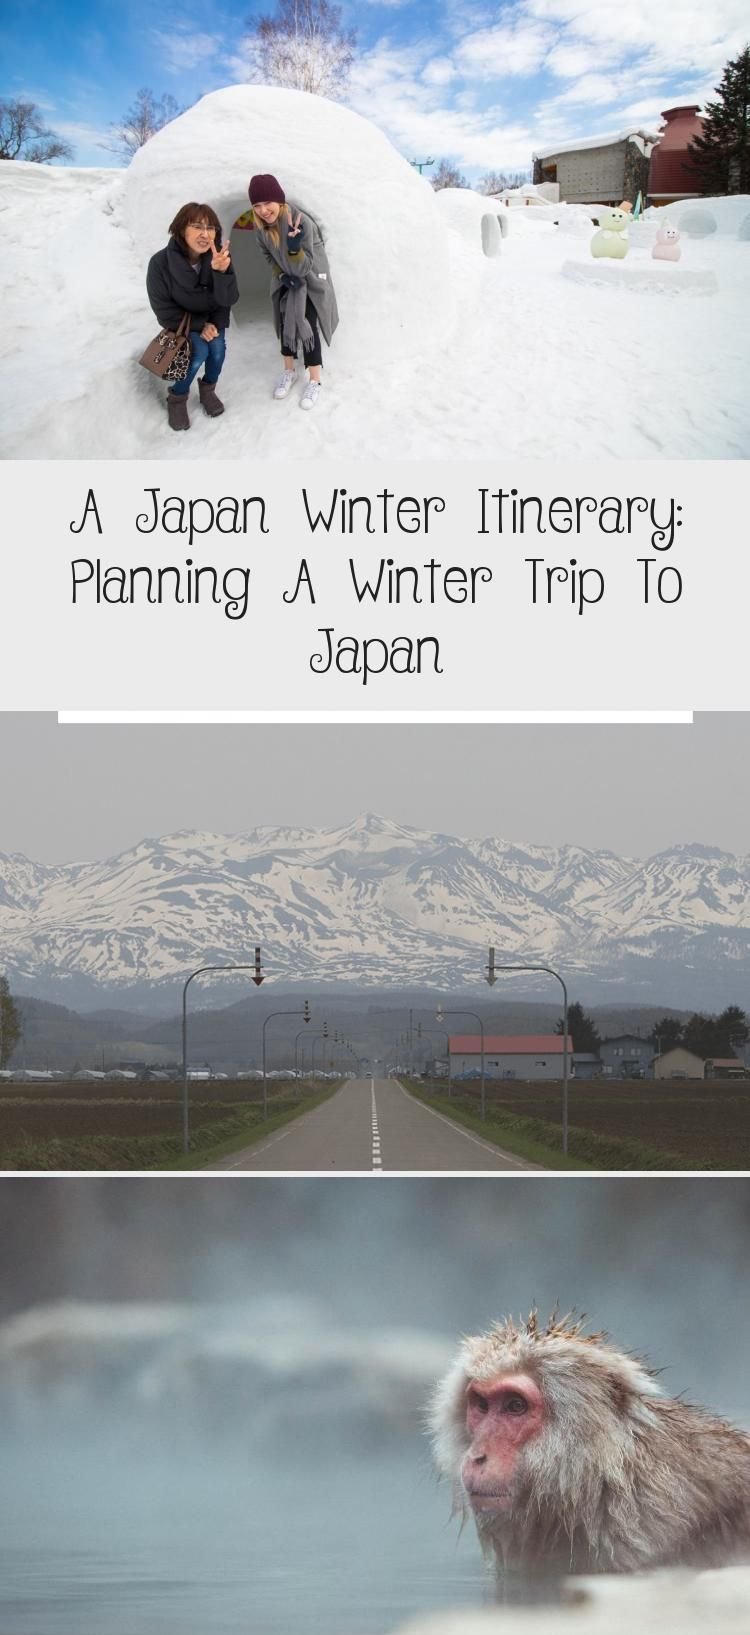 Everything you need to know about visiting Japan in winter. Japan winter travel will take you to some of the most magical places in Japan. From Tokyo to Hokkaido and beyond, here are the best places to visit in Japan during winter. #japan #wintertravel #japantravel #hokkaido #travelingwinterPhotography #travelingwinterSnow #travelingwinterRoadTrips #travelingwinterClothes #travelingwinterEurope